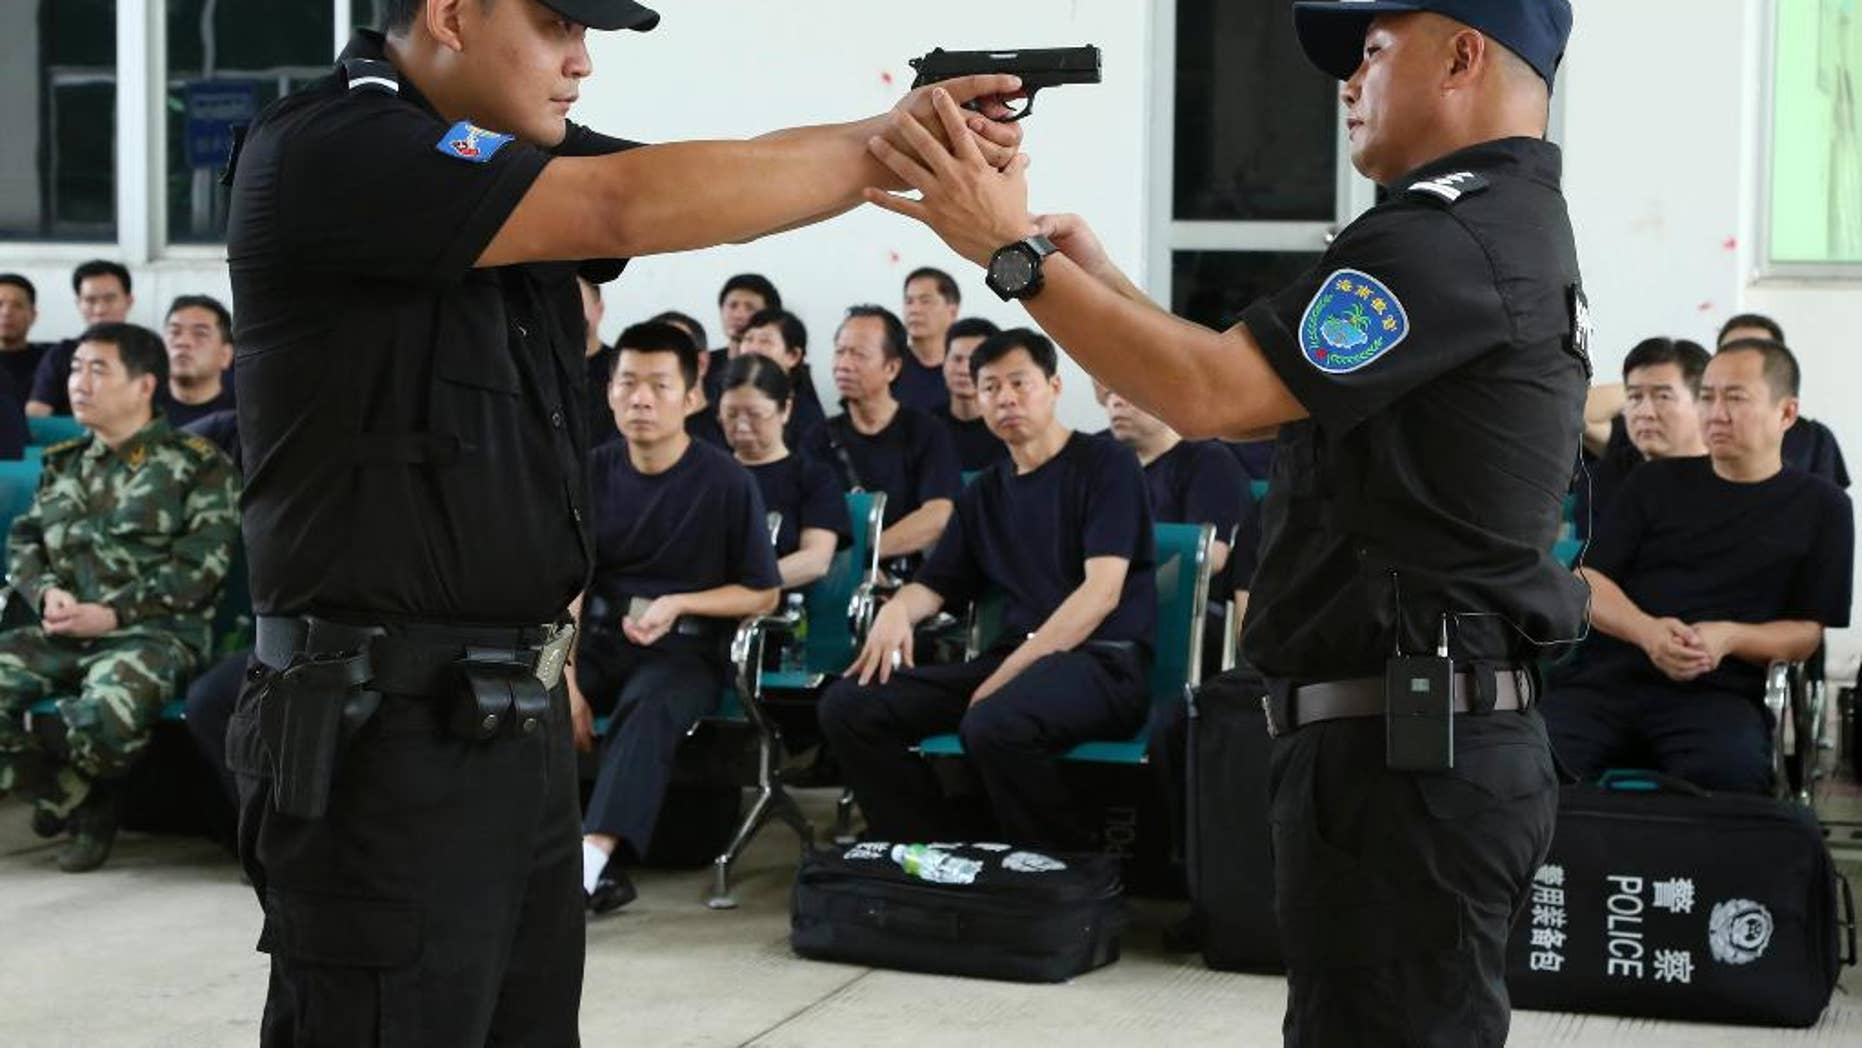 FILE - In this April 25, 2014 file photo, a police training officer, right, guides a trainee during a weapons training session for police officers in Haikou, in southern China's Hainan province.  Newly granted power for normal Chinese police officers to carry a firearm, has raised calls for a full independent investigation, after a police officer killed an unarmed traveler in front of his elderly mother and three small children at a train station, the Public Security Ministry said Tuesday May 12, 2015, after several shootings by police were never fully accounted for, according to Zhao Chu, a Shanghai-based independent commentator.  (Chinatopix via AP, File) CHINA OUT